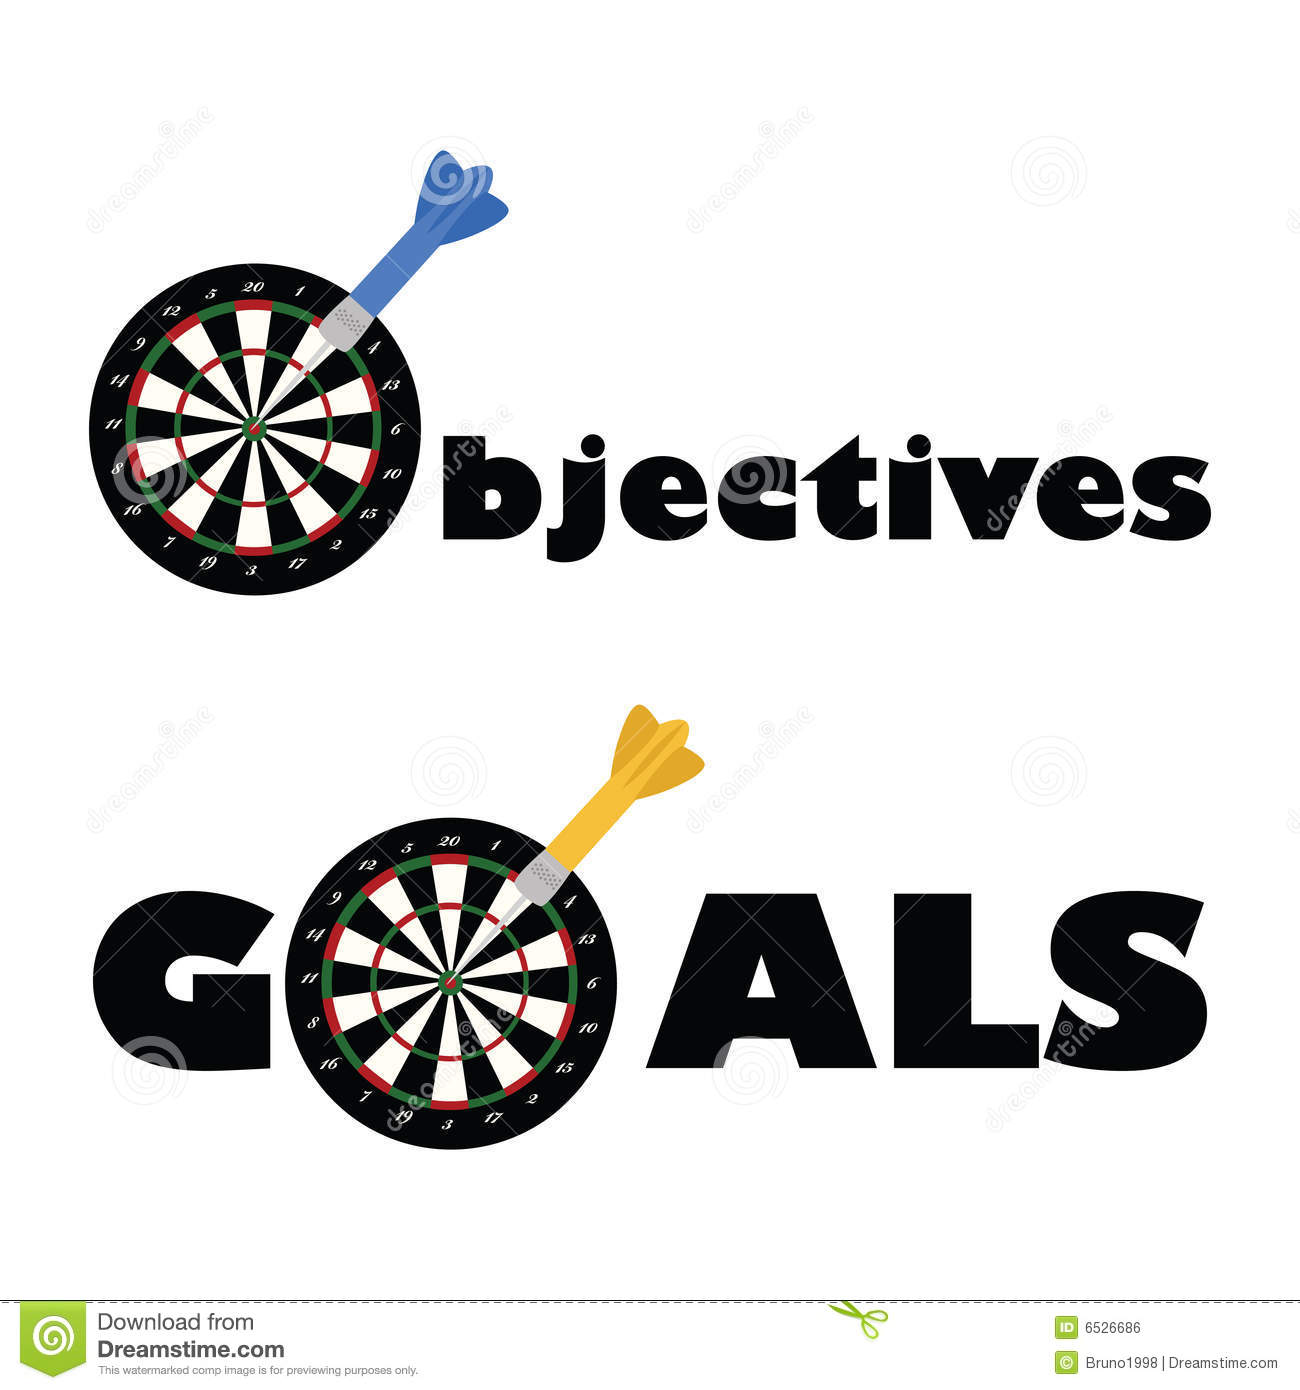 Goals And Objectives Clipart.